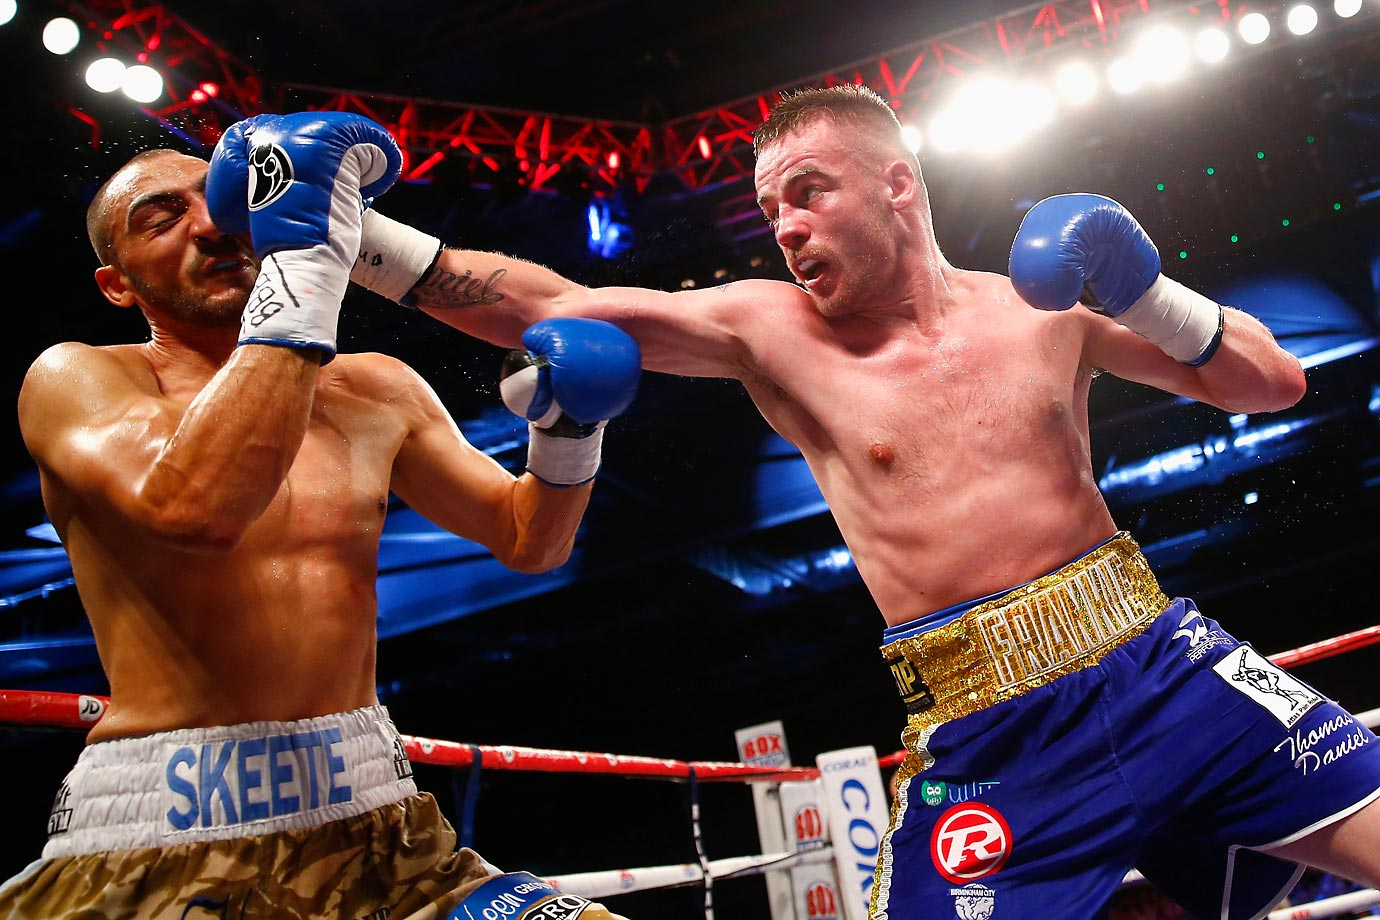 Frankie Gavin fights Bradley Skeete in the British and Commonwealth Welterweight Championships.